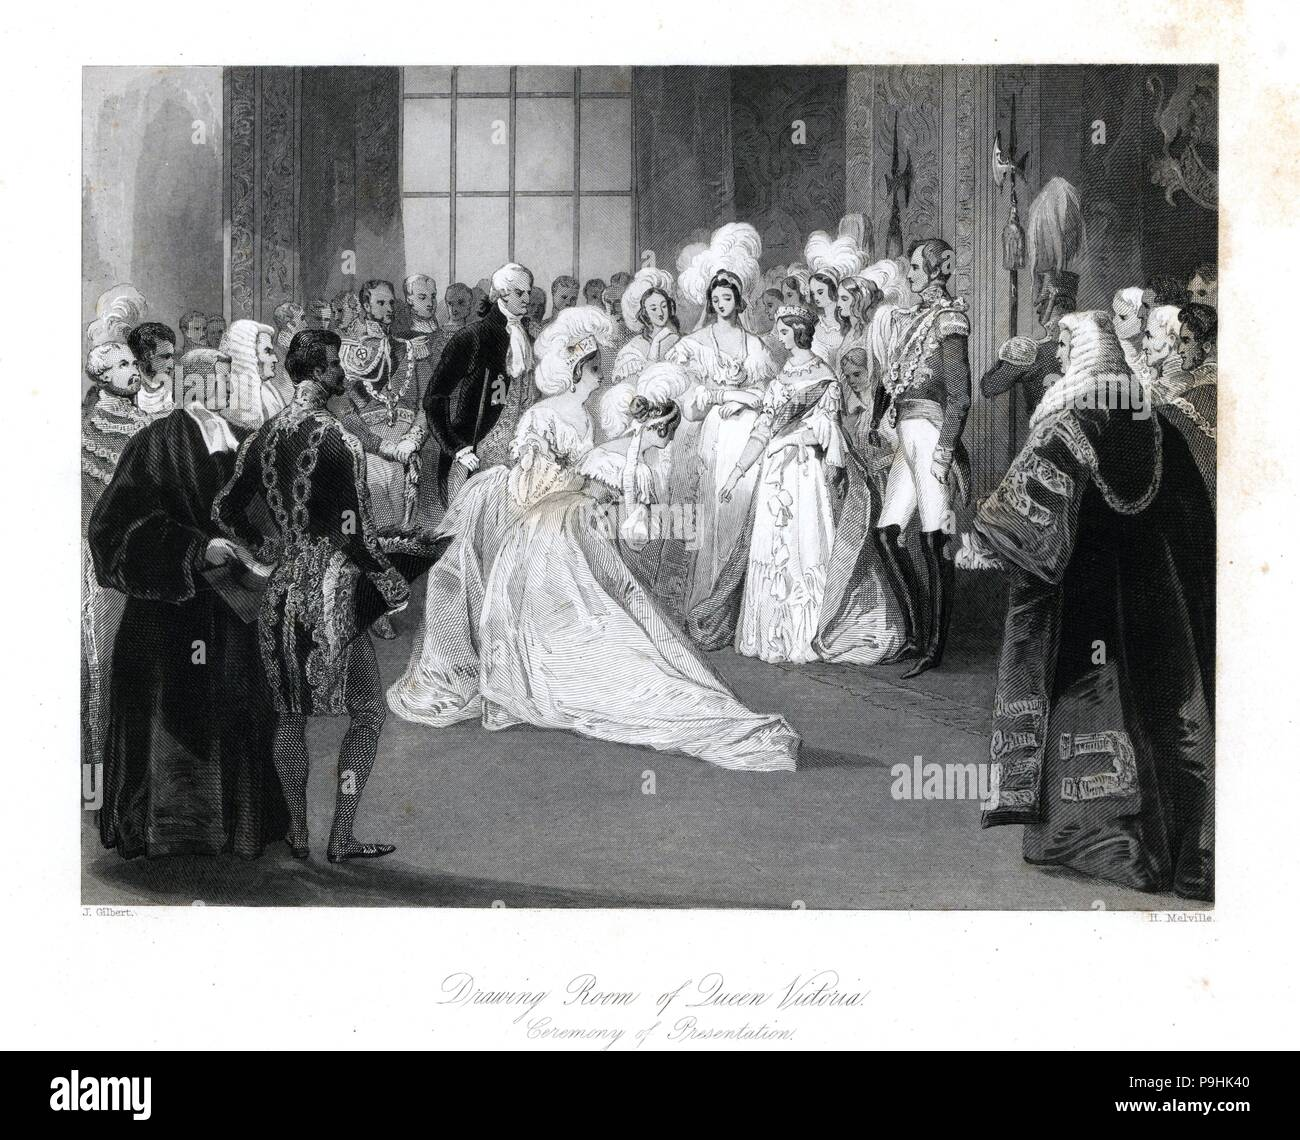 Ceremony of presentation to Queen Victoria in the Drawing Room at St. James' Palace. Steel engraving by Henry Melville after an illustration by J. Gilbert from London Interiors, Their Costumes and Ceremonies, Joshua Mead, London, 1841. - Stock Image